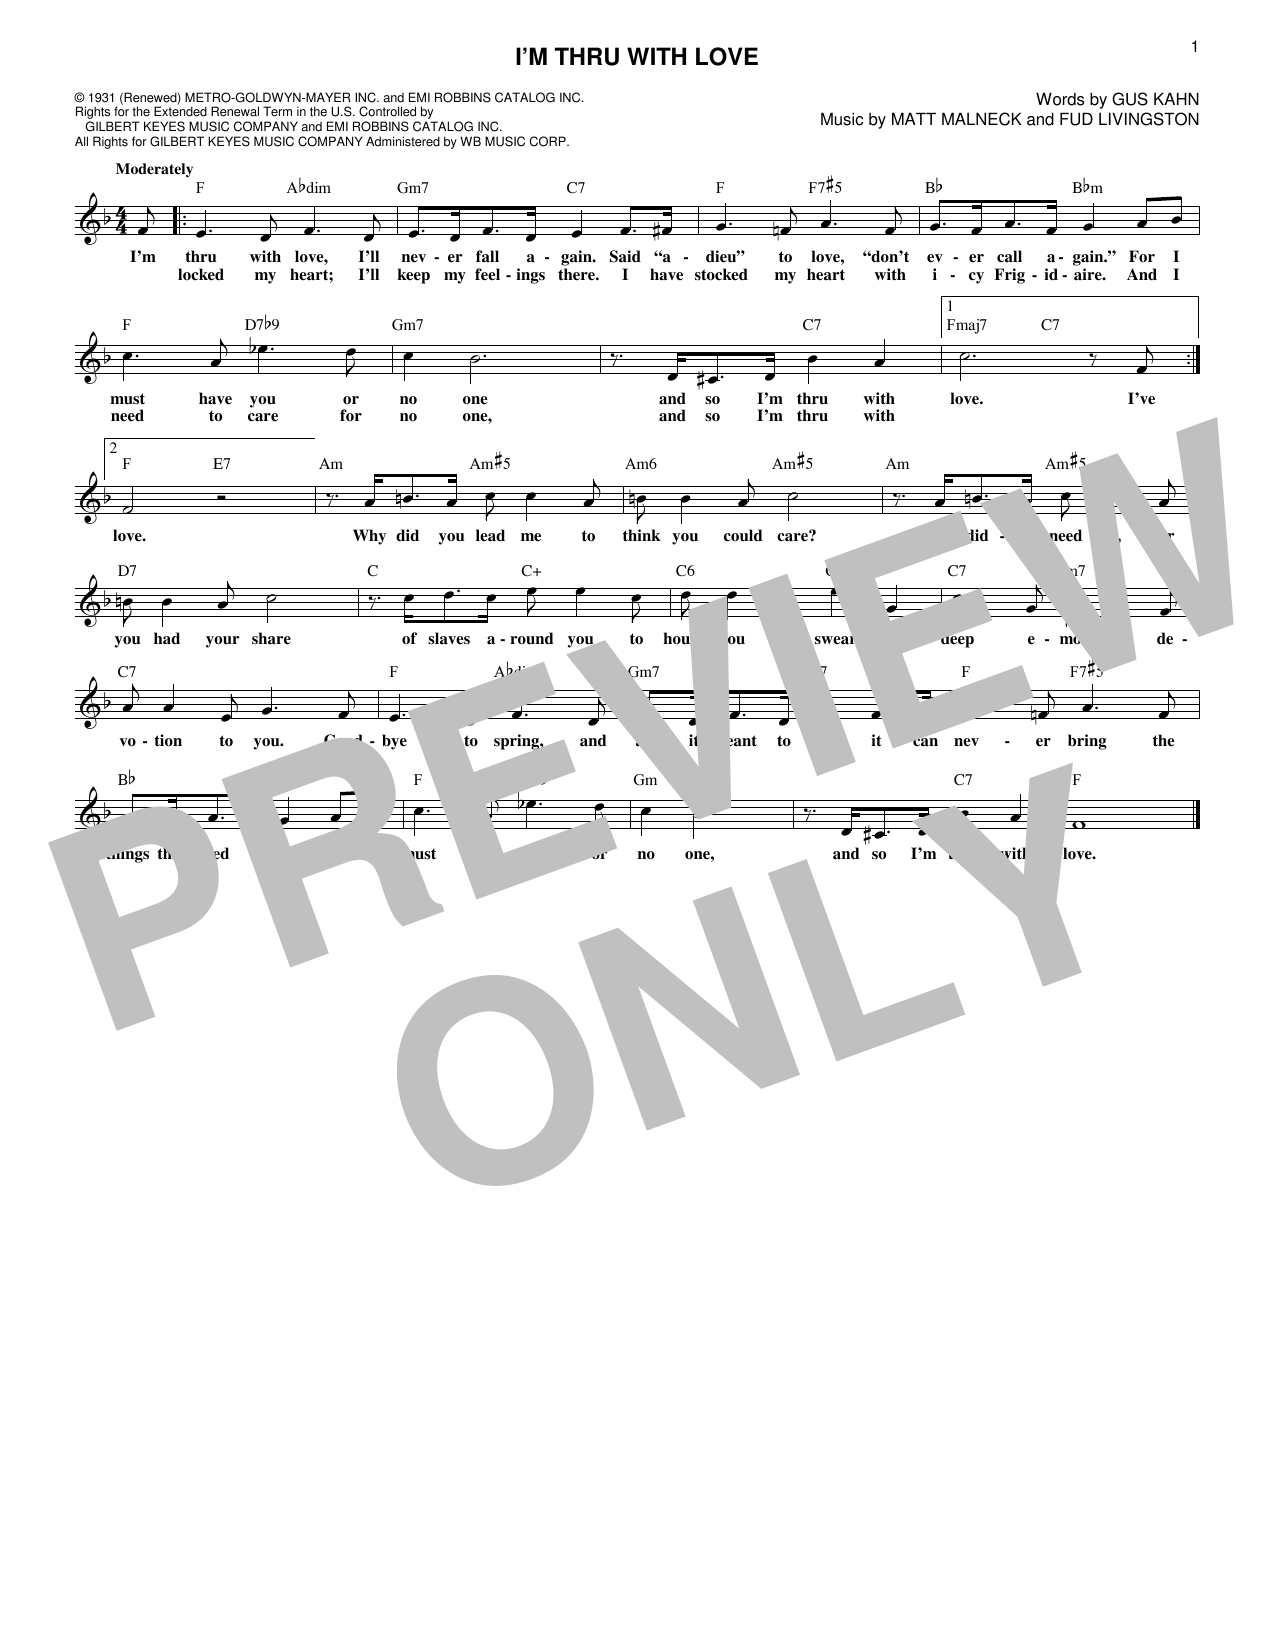 Matt Malneck I'm Thru With Love sheet music notes and chords. Download Printable PDF.